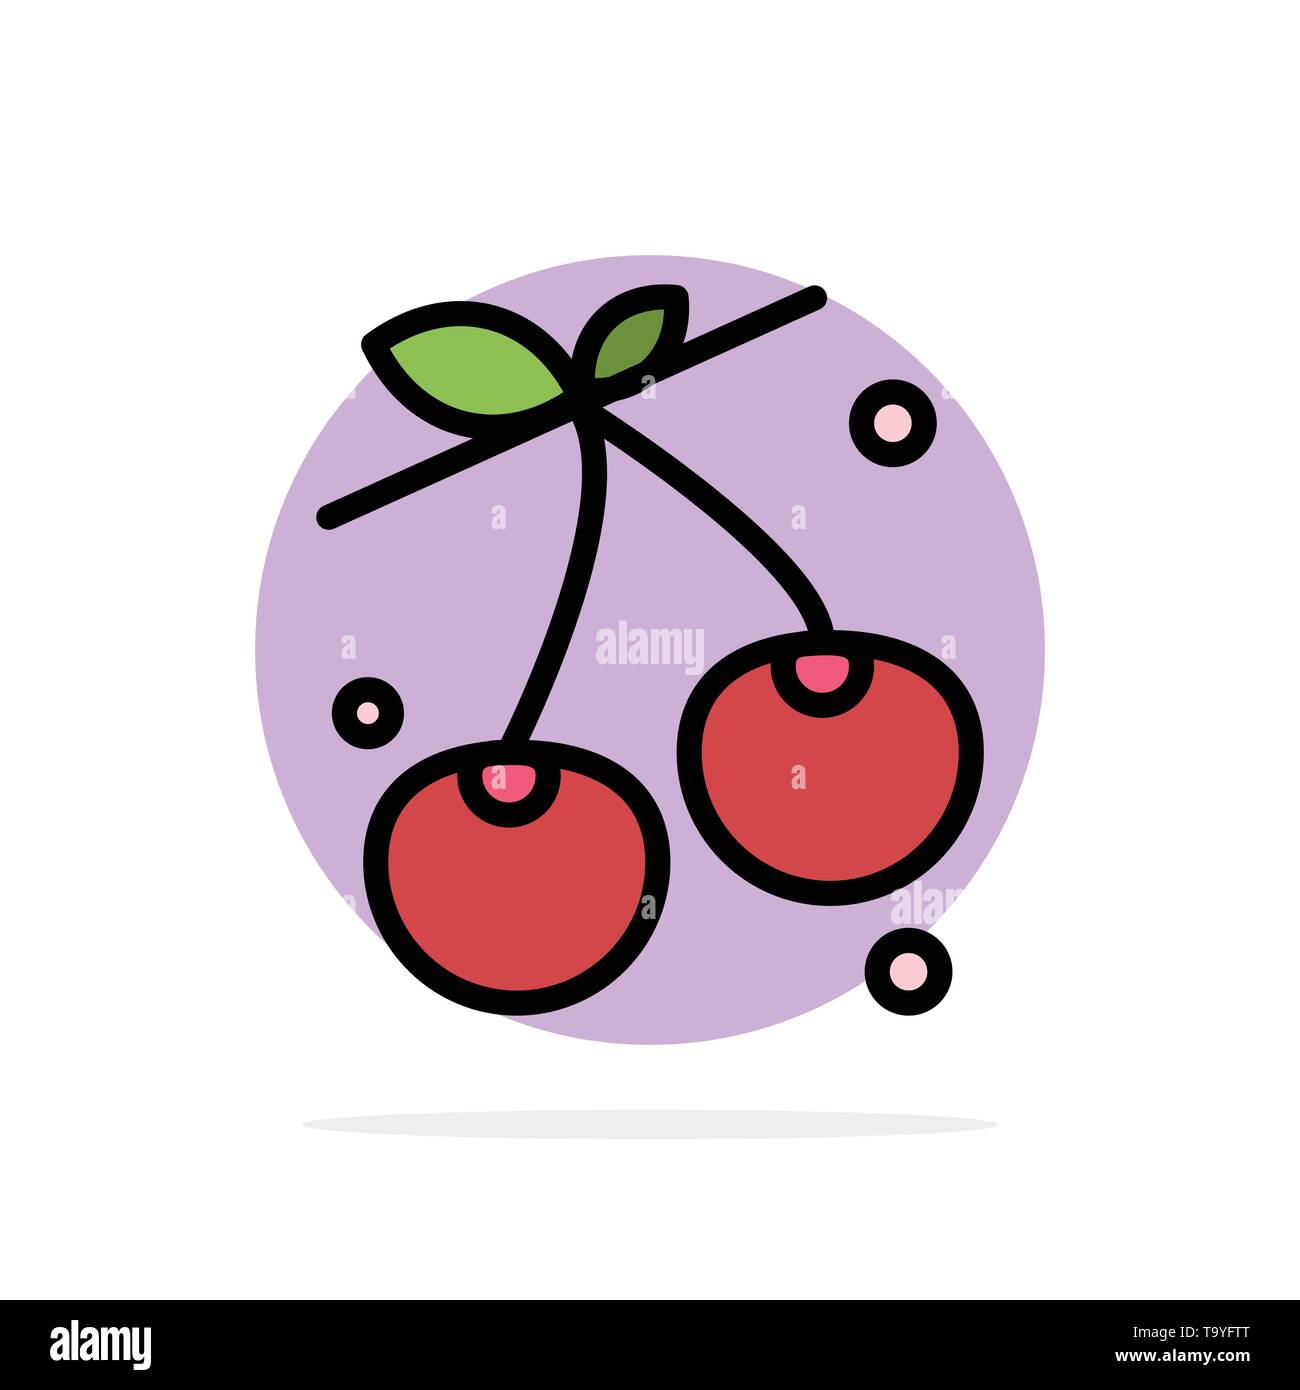 Berry, Cherry, Food, Spring Abstract Circle Background Flat color Icon - Stock Image